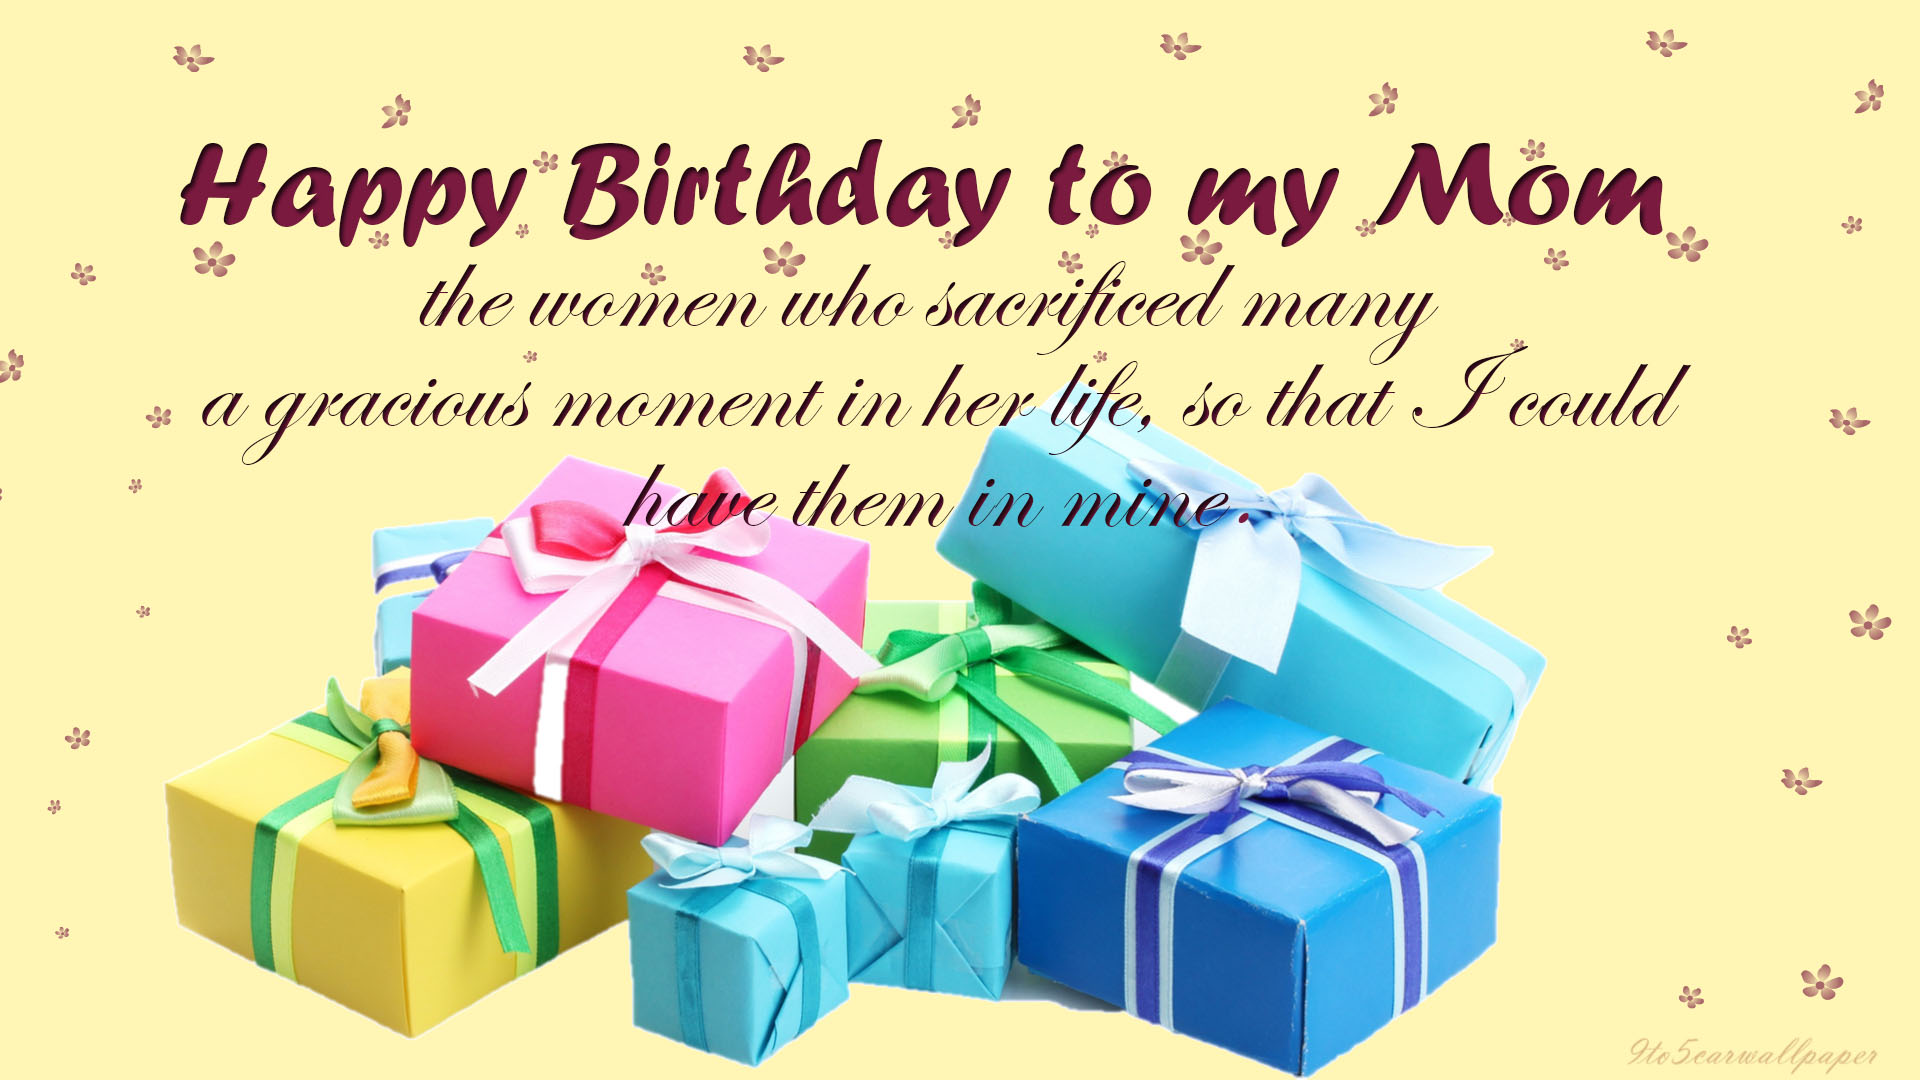 Happy Birthday Images Pics Quotes And Wallpapers My Site